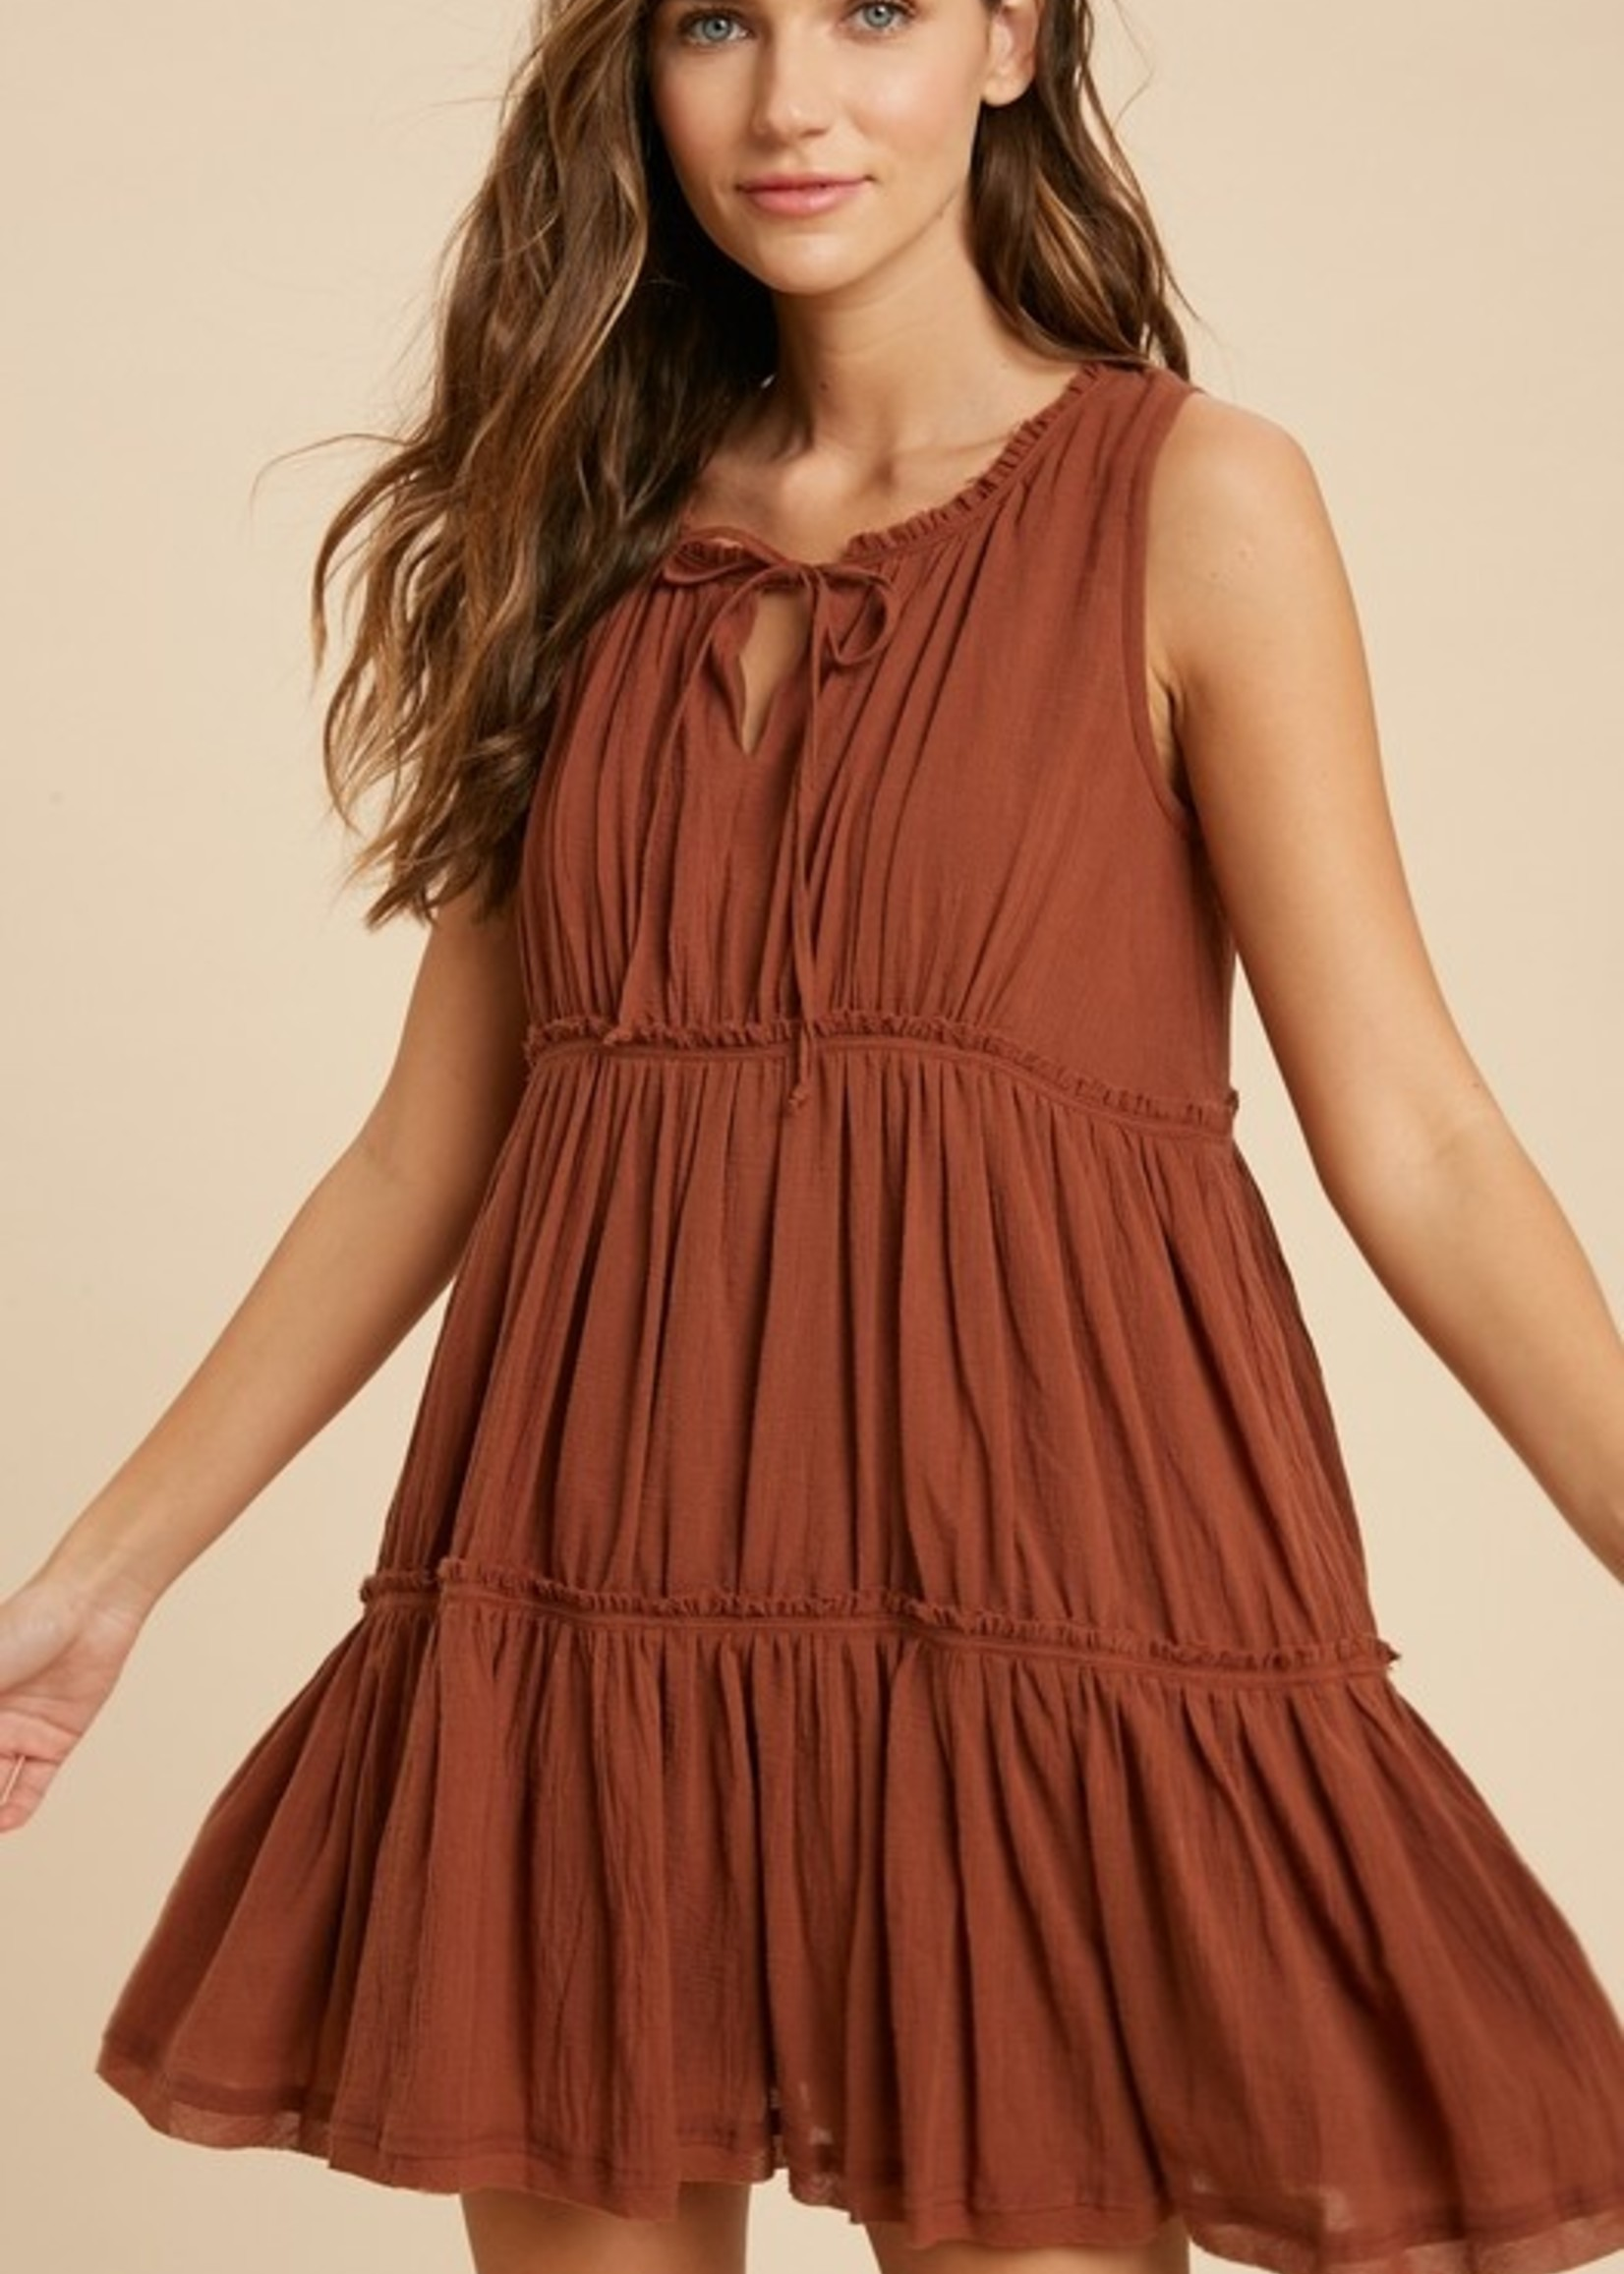 Tiered Sleeveless Dress - Rust